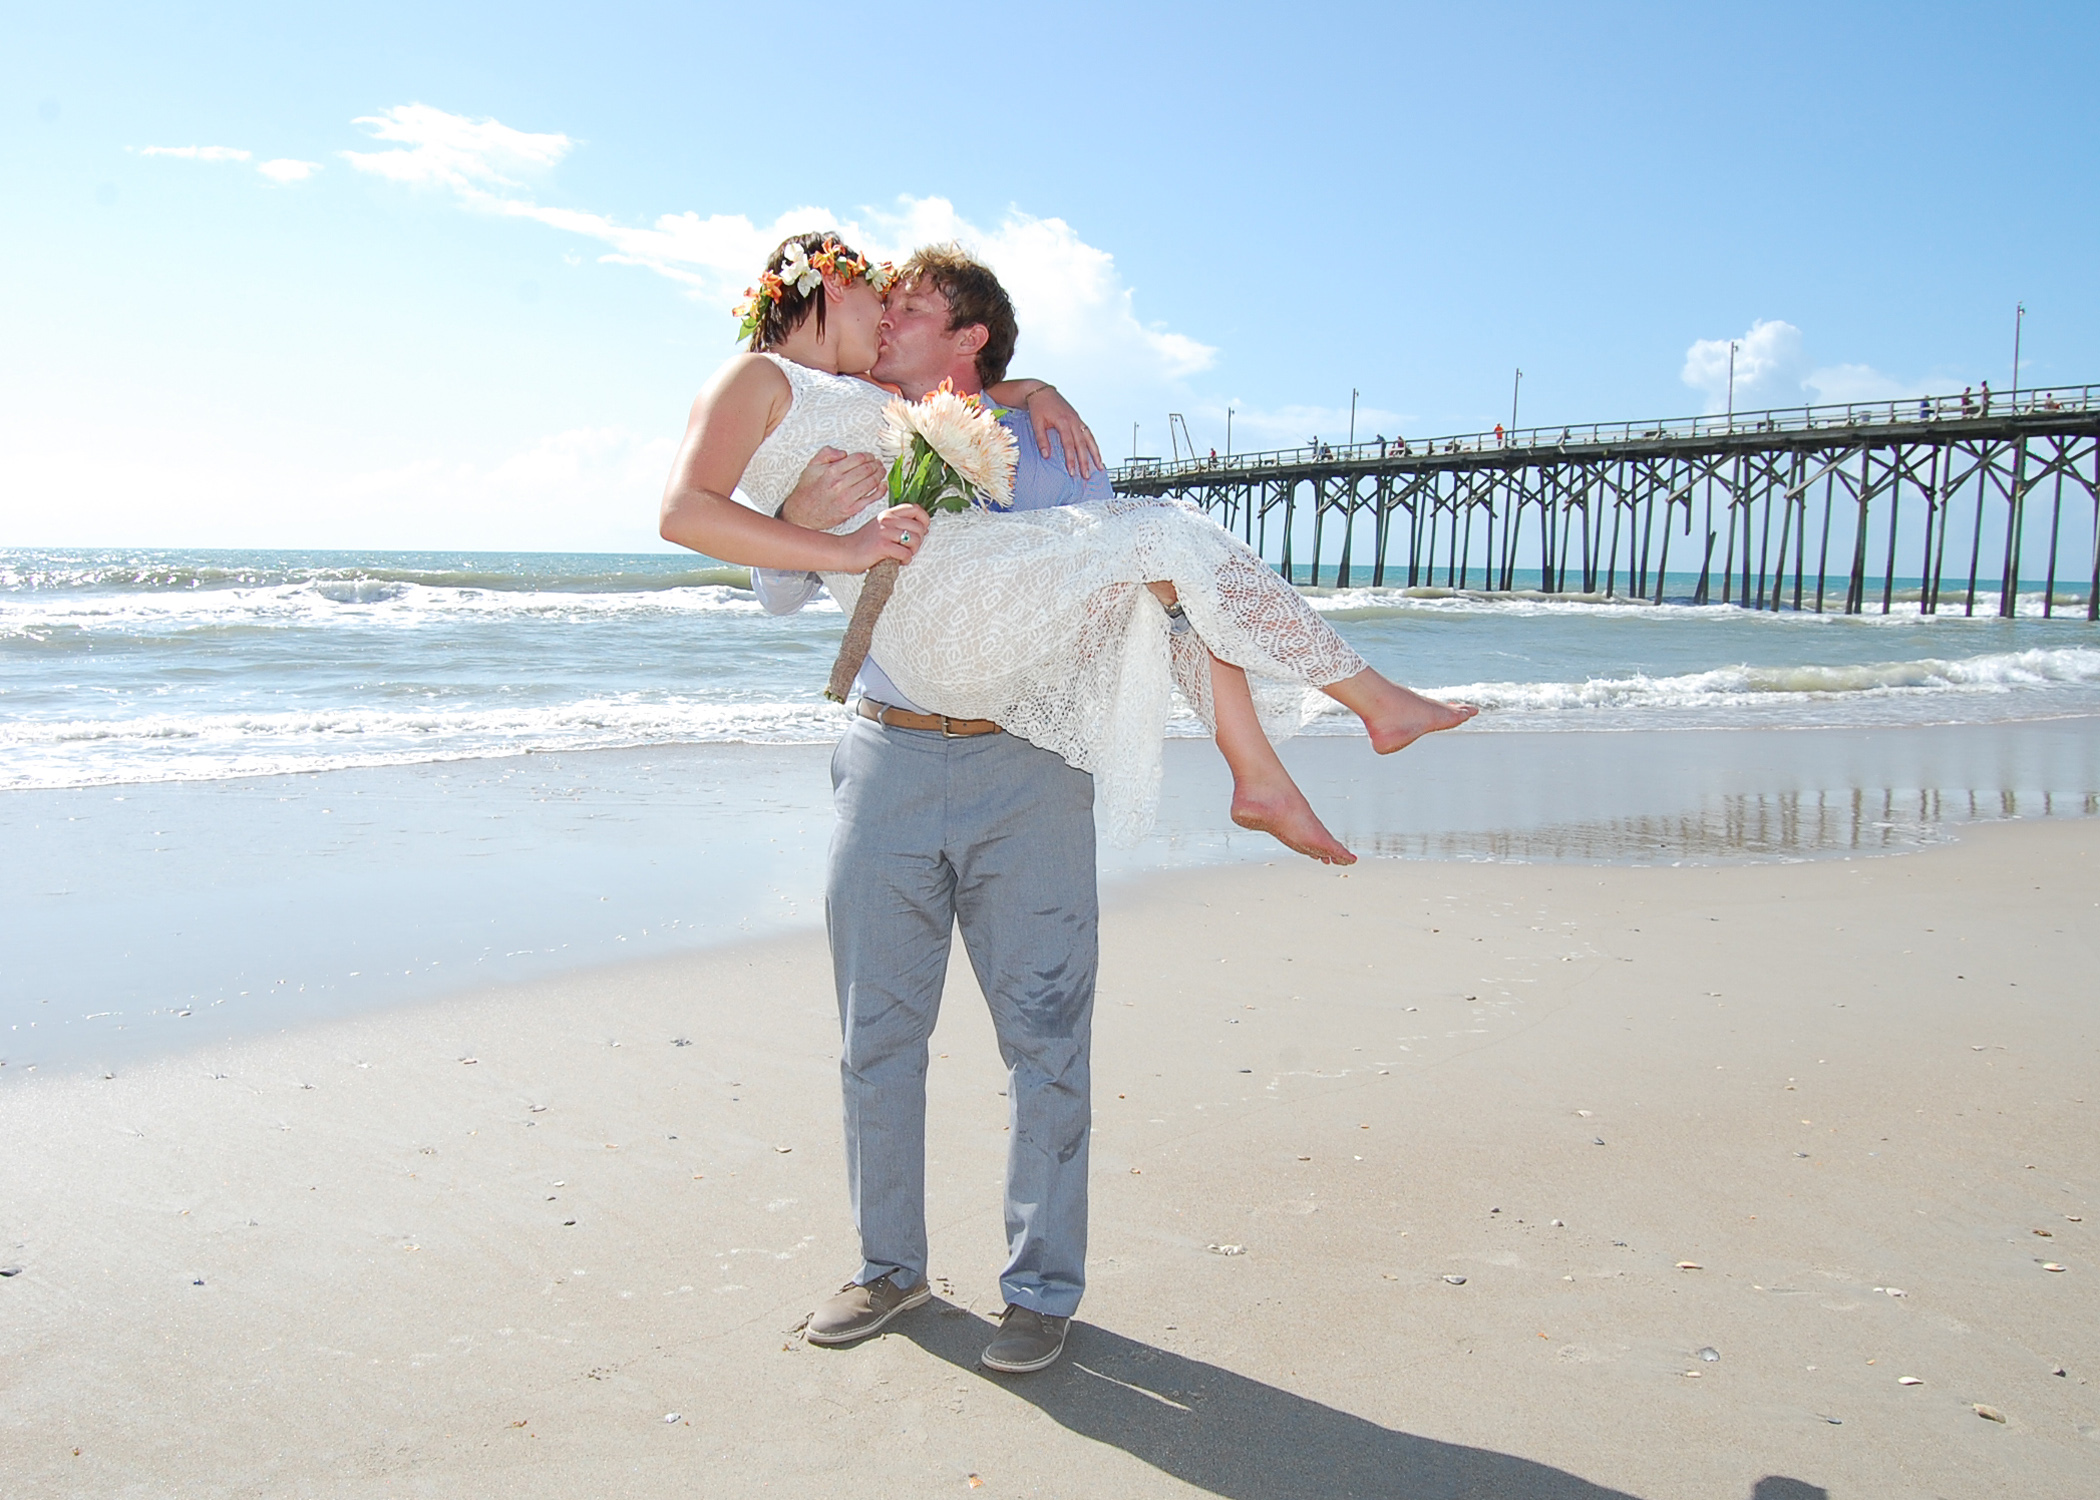 Wide Shot of Groom picking up bride on the beach.